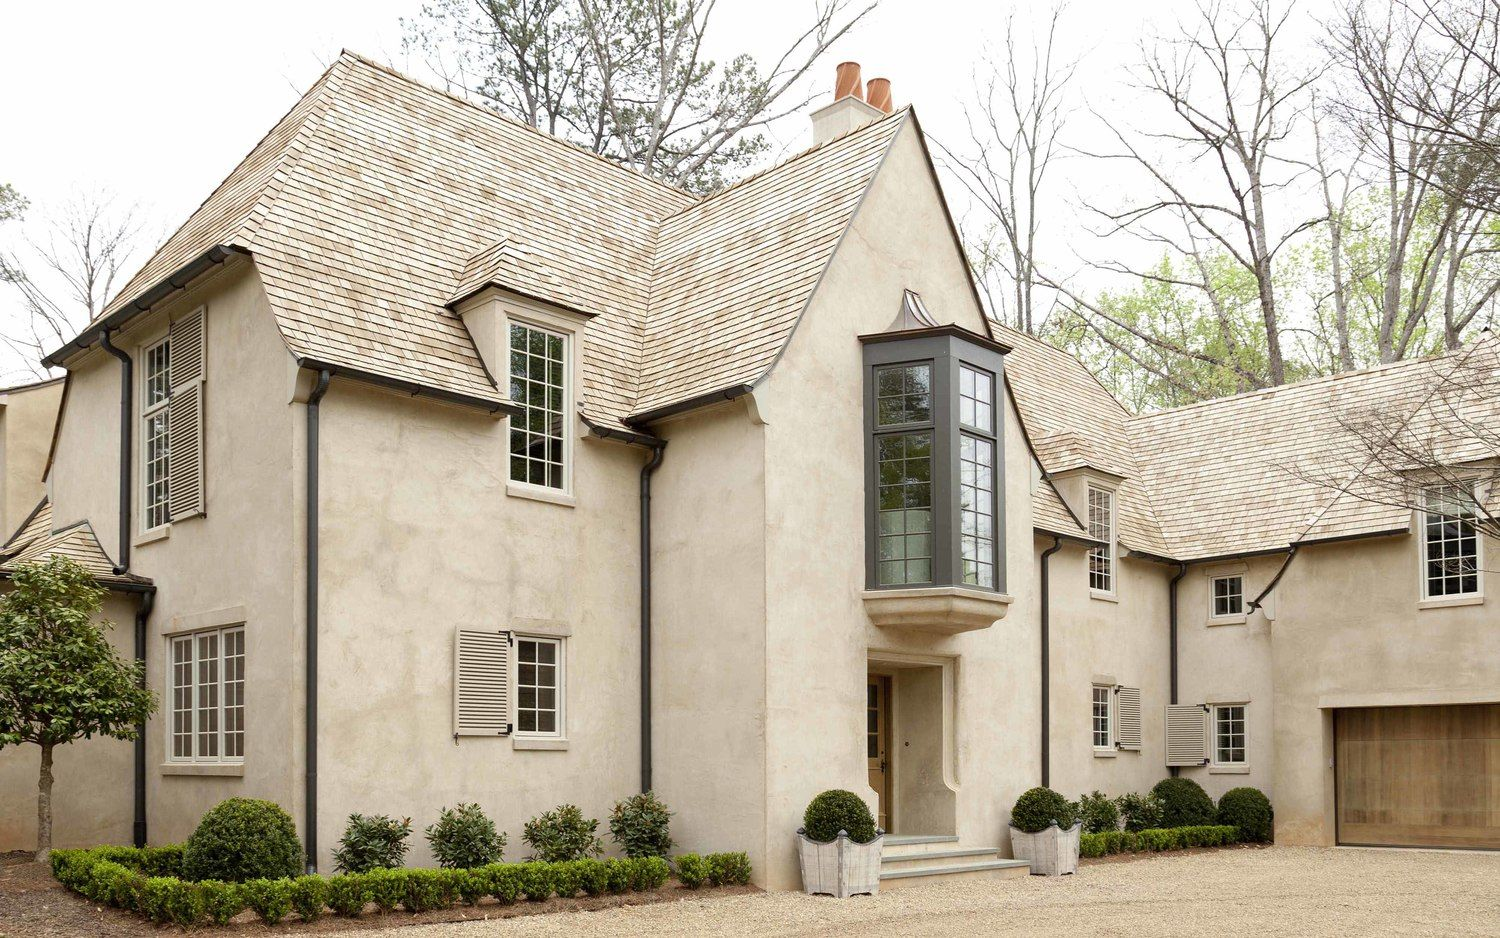 roof elevation | roof | Pinterest | Architecture, French ...